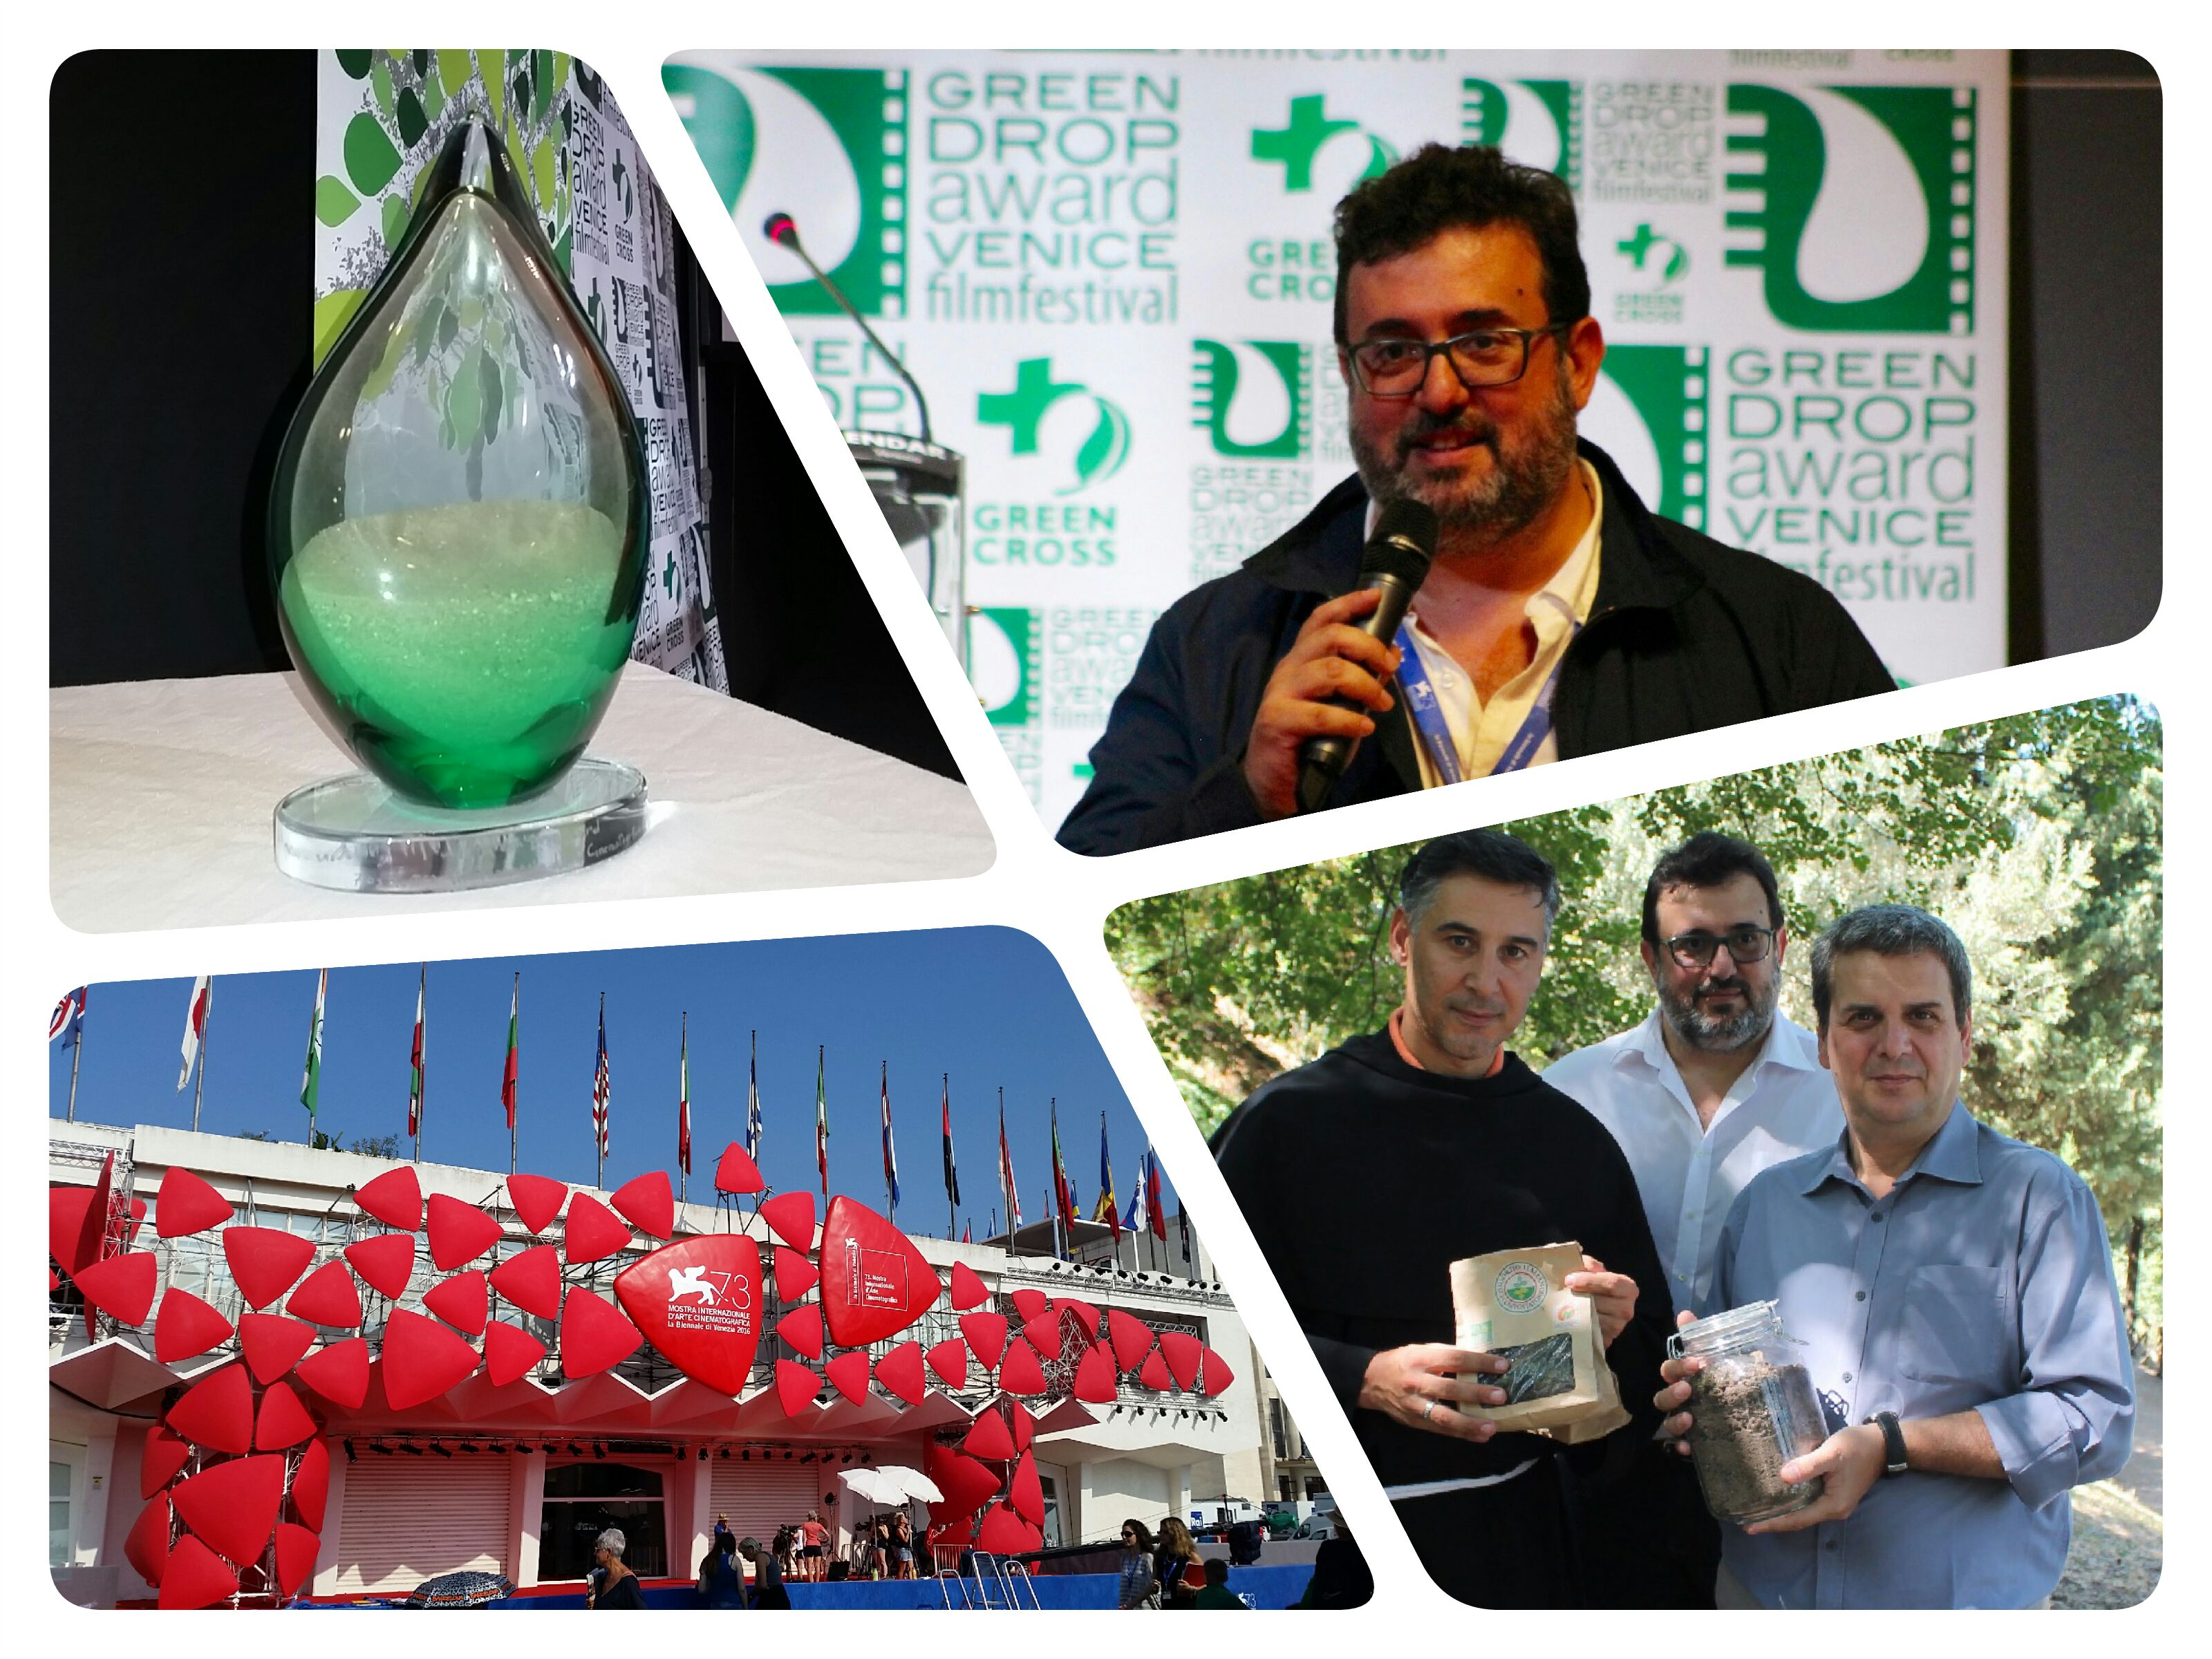 Il Green Drop Award: tra film dedicati all'ecologia e #CinemainClasseA